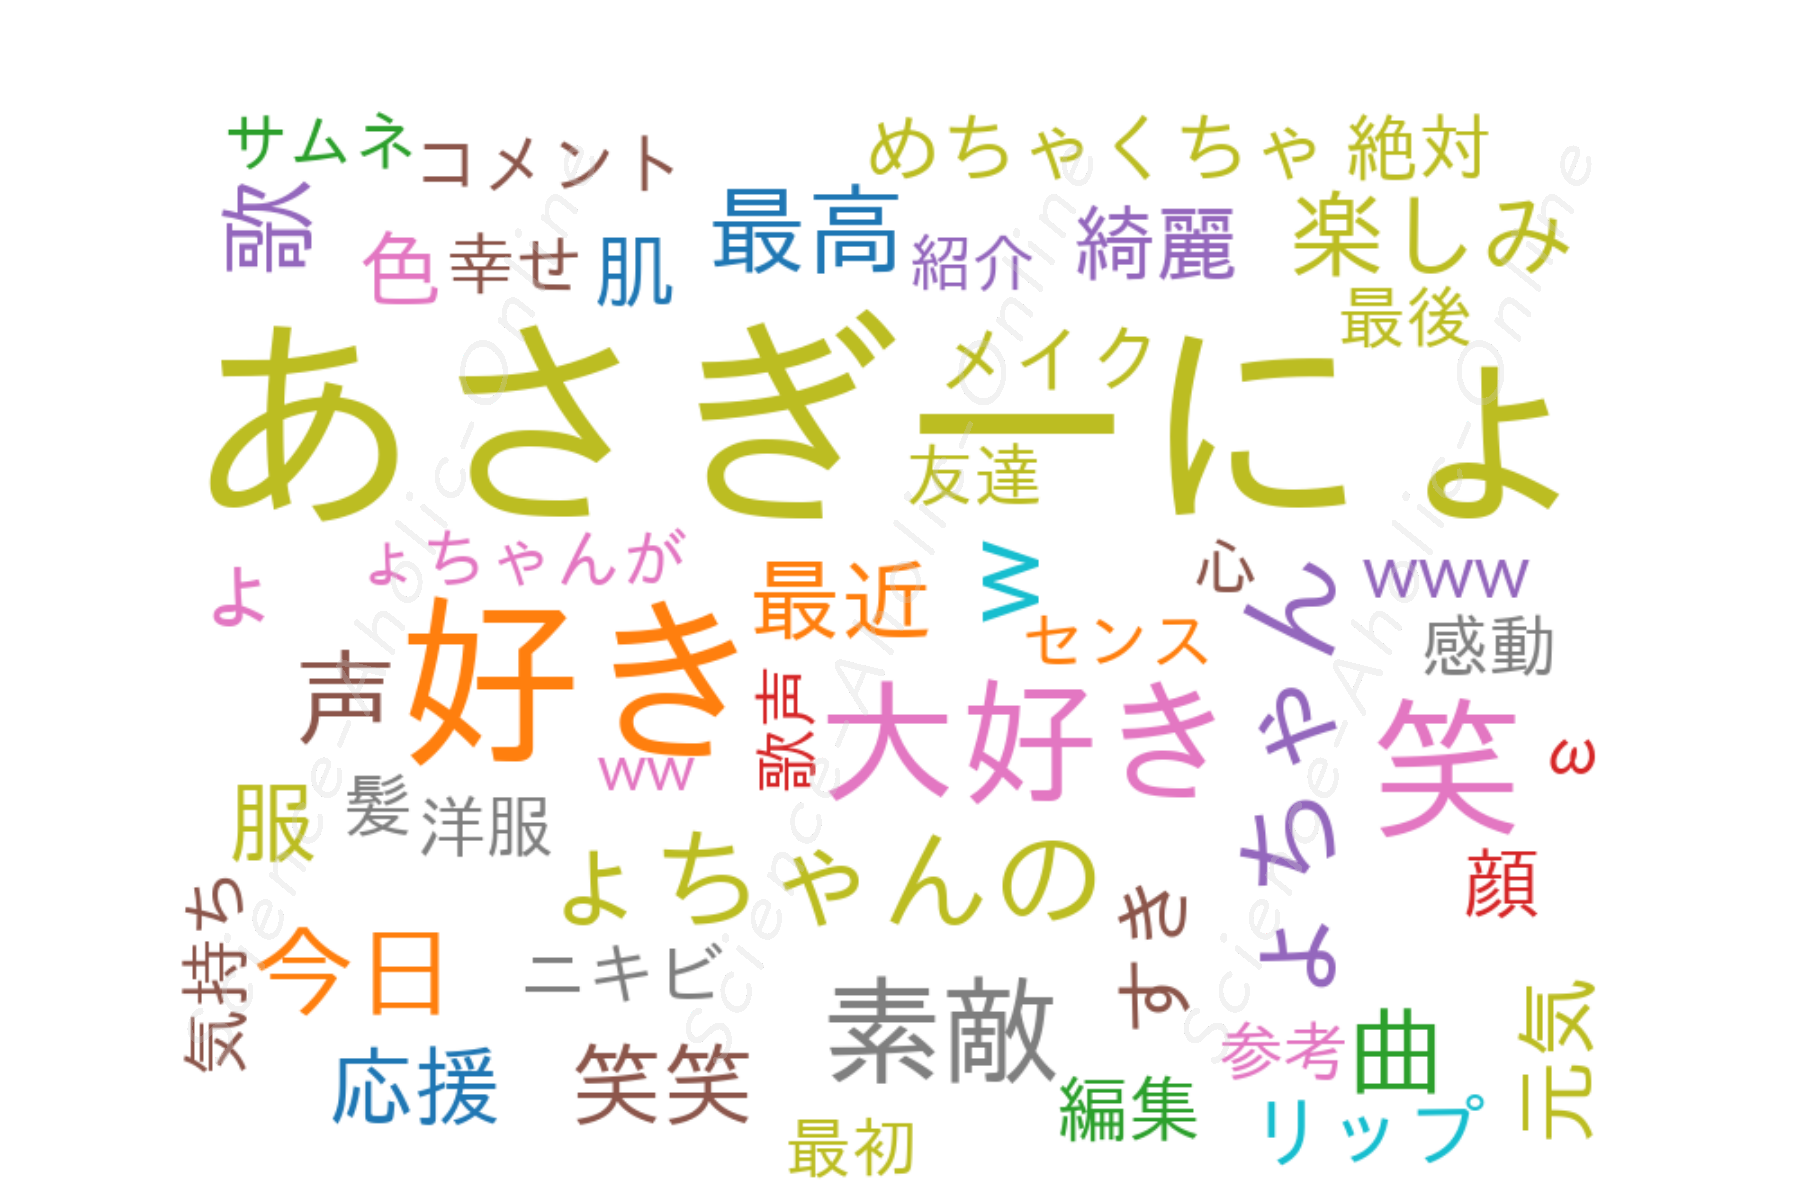 https://science-aholic-online.com/wp-content/uploads/2020/08/wordcloud_あさぎーにょ.png